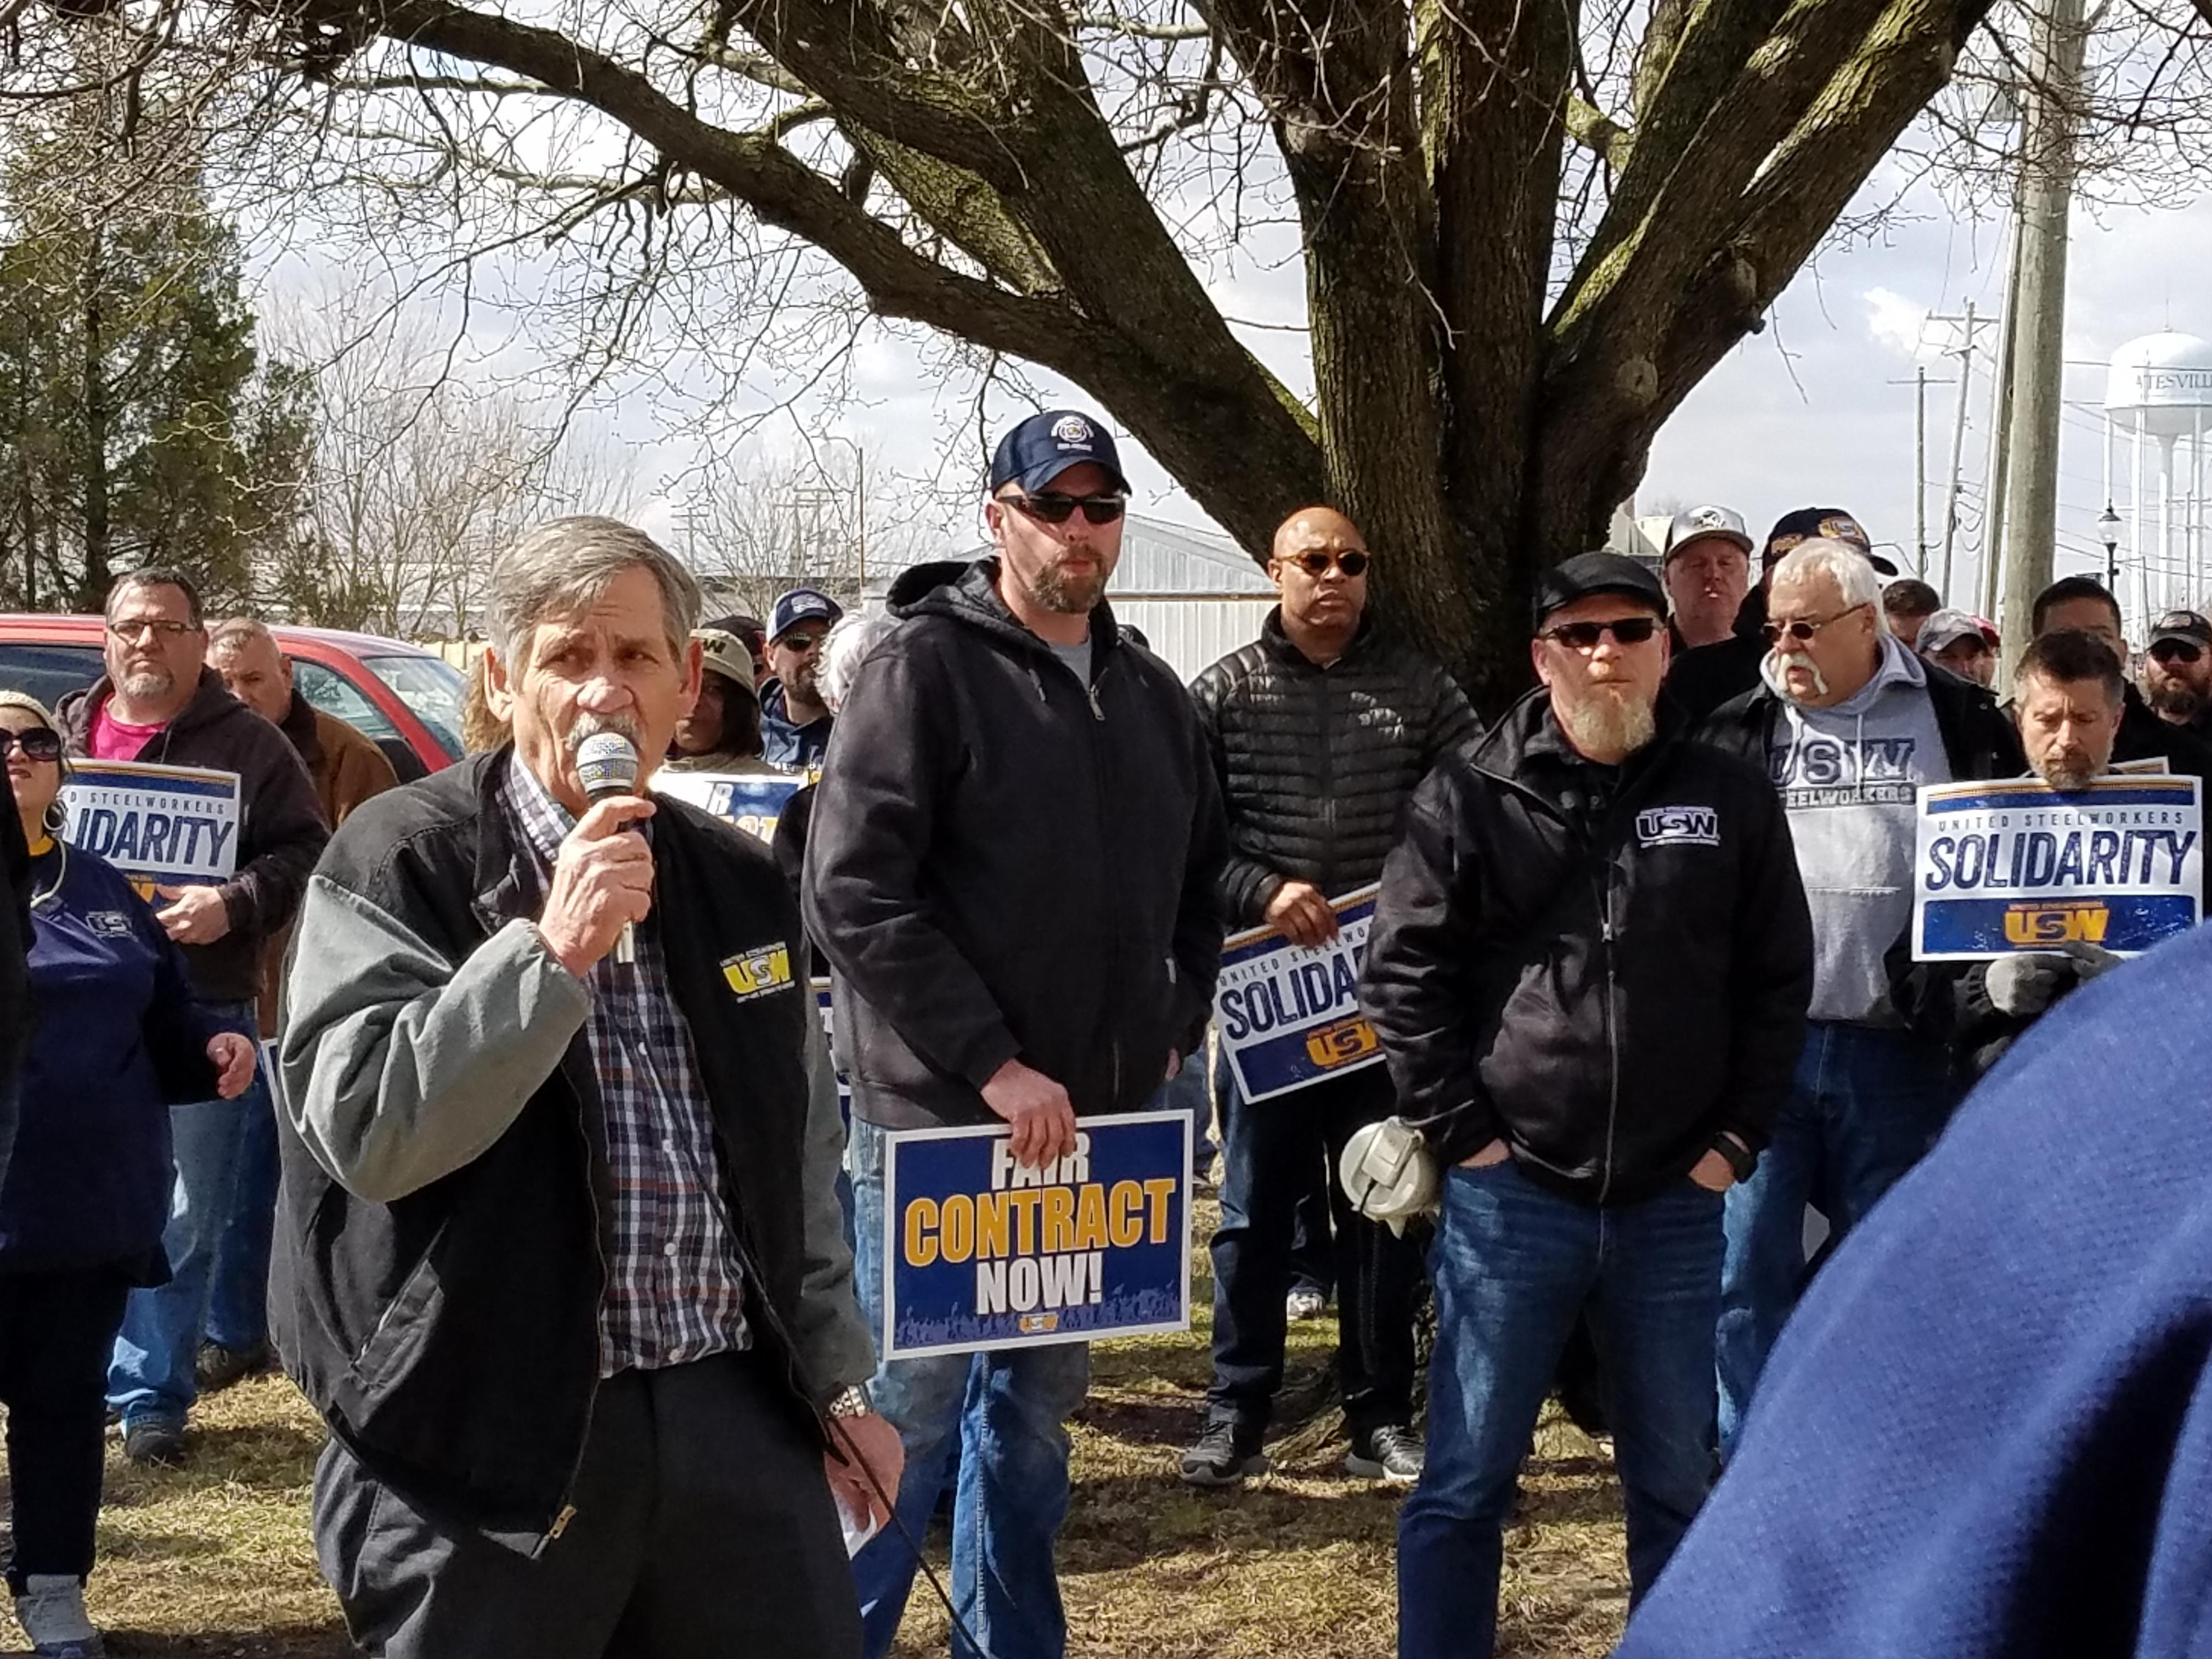 Mike Millsap Addresses Rally goers in batesville Indiana